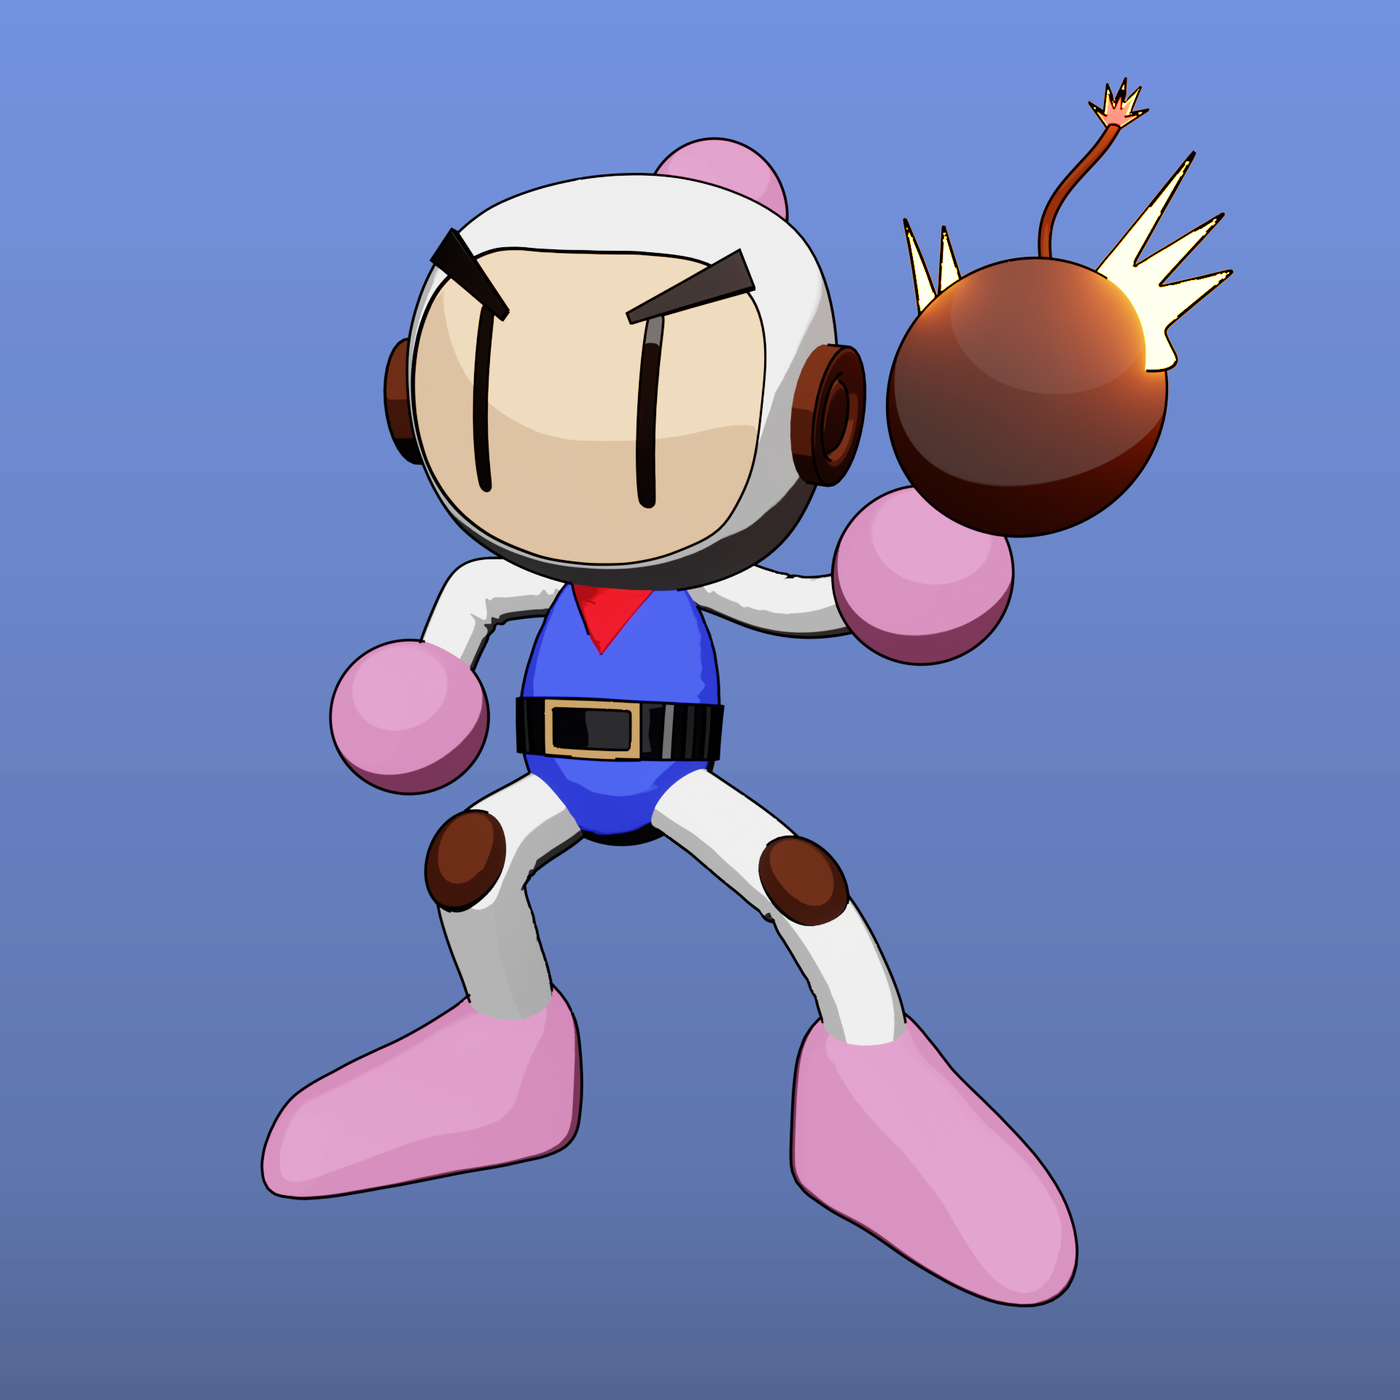 Toon Bomberman Fan Art